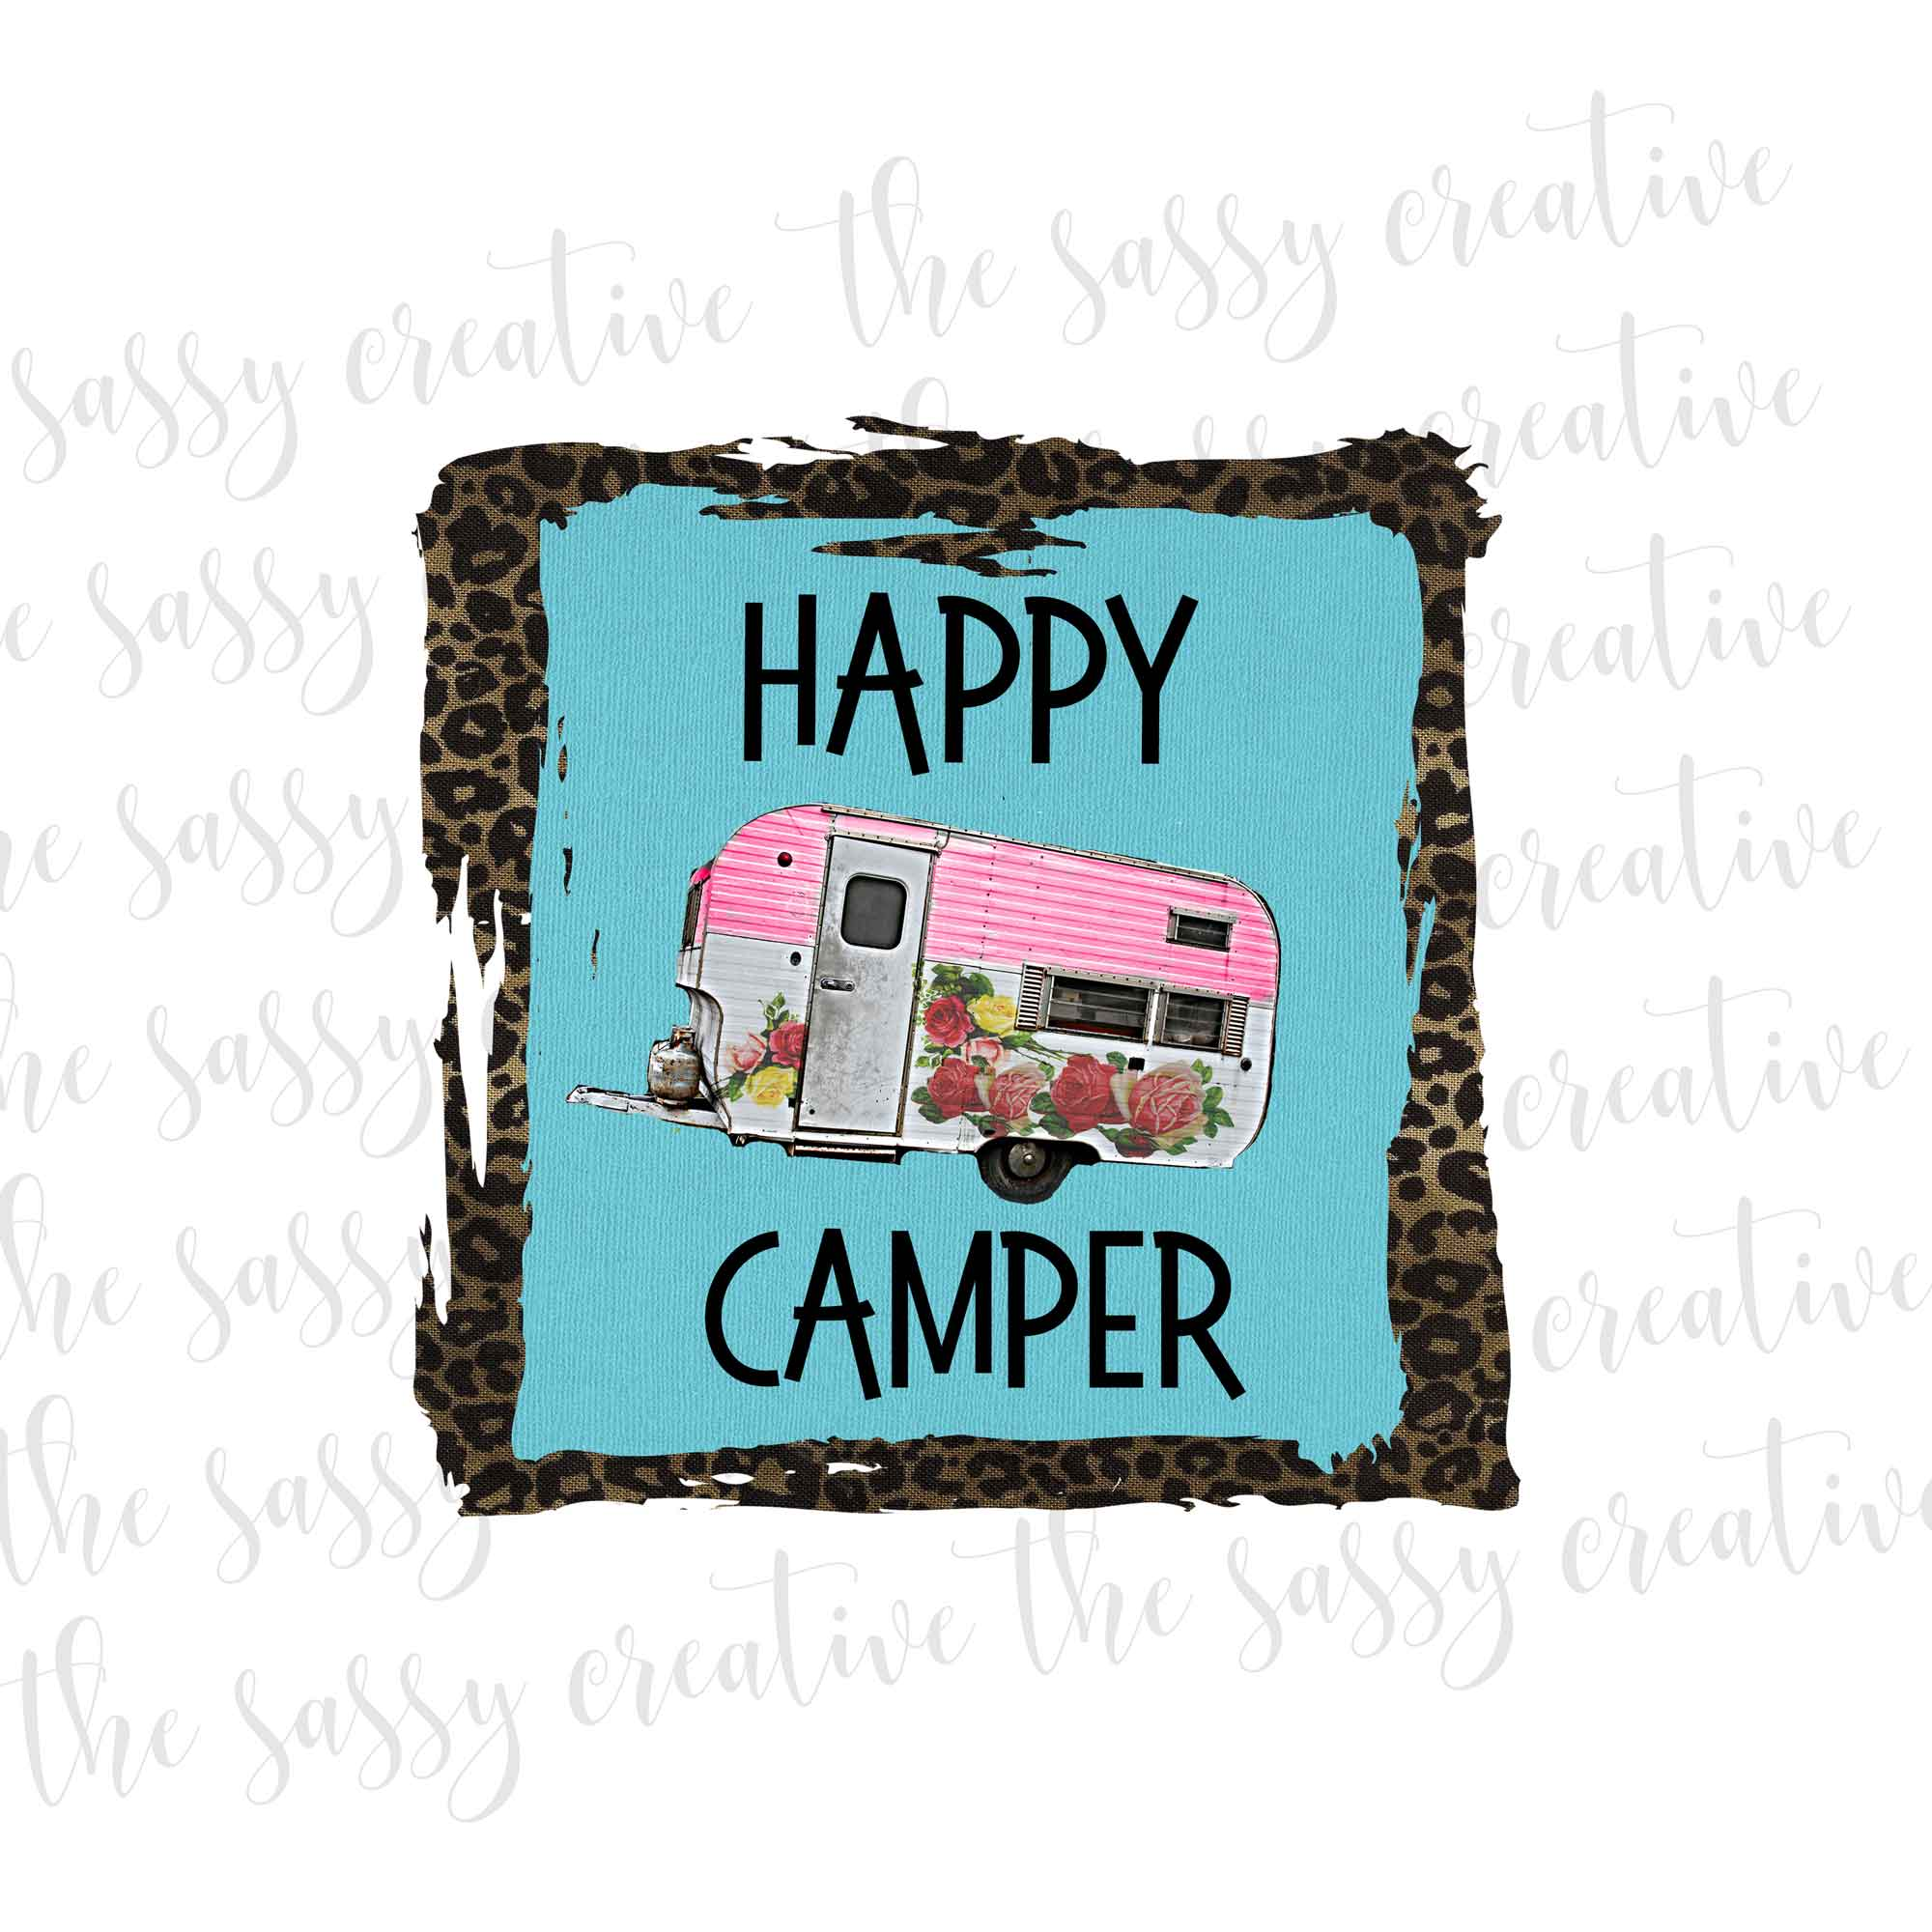 happycampercover